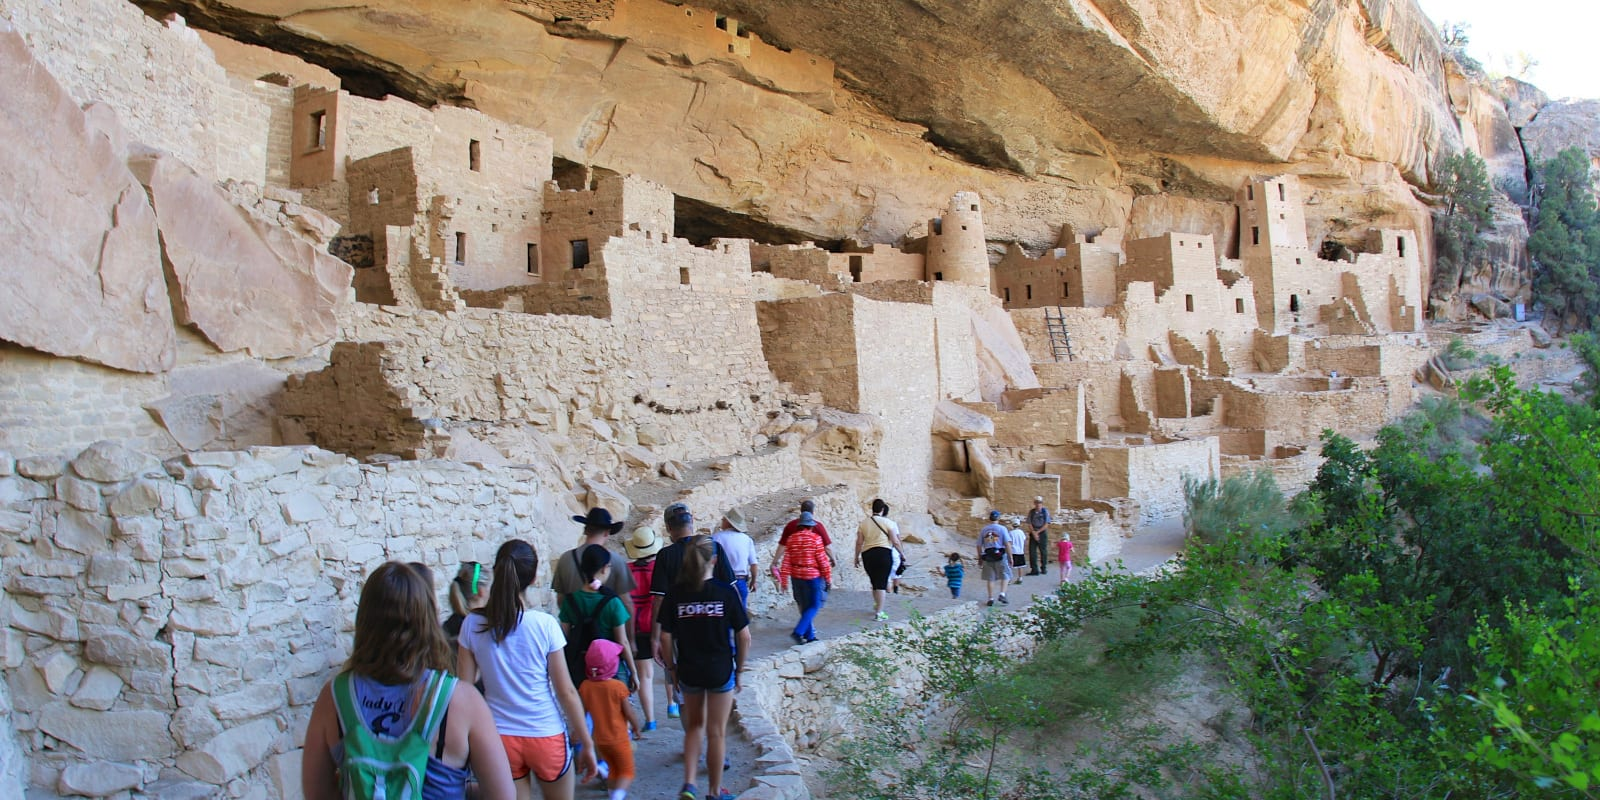 Colorado Educational Field Trip Mesa Verde Cliff Palace Guided Tour